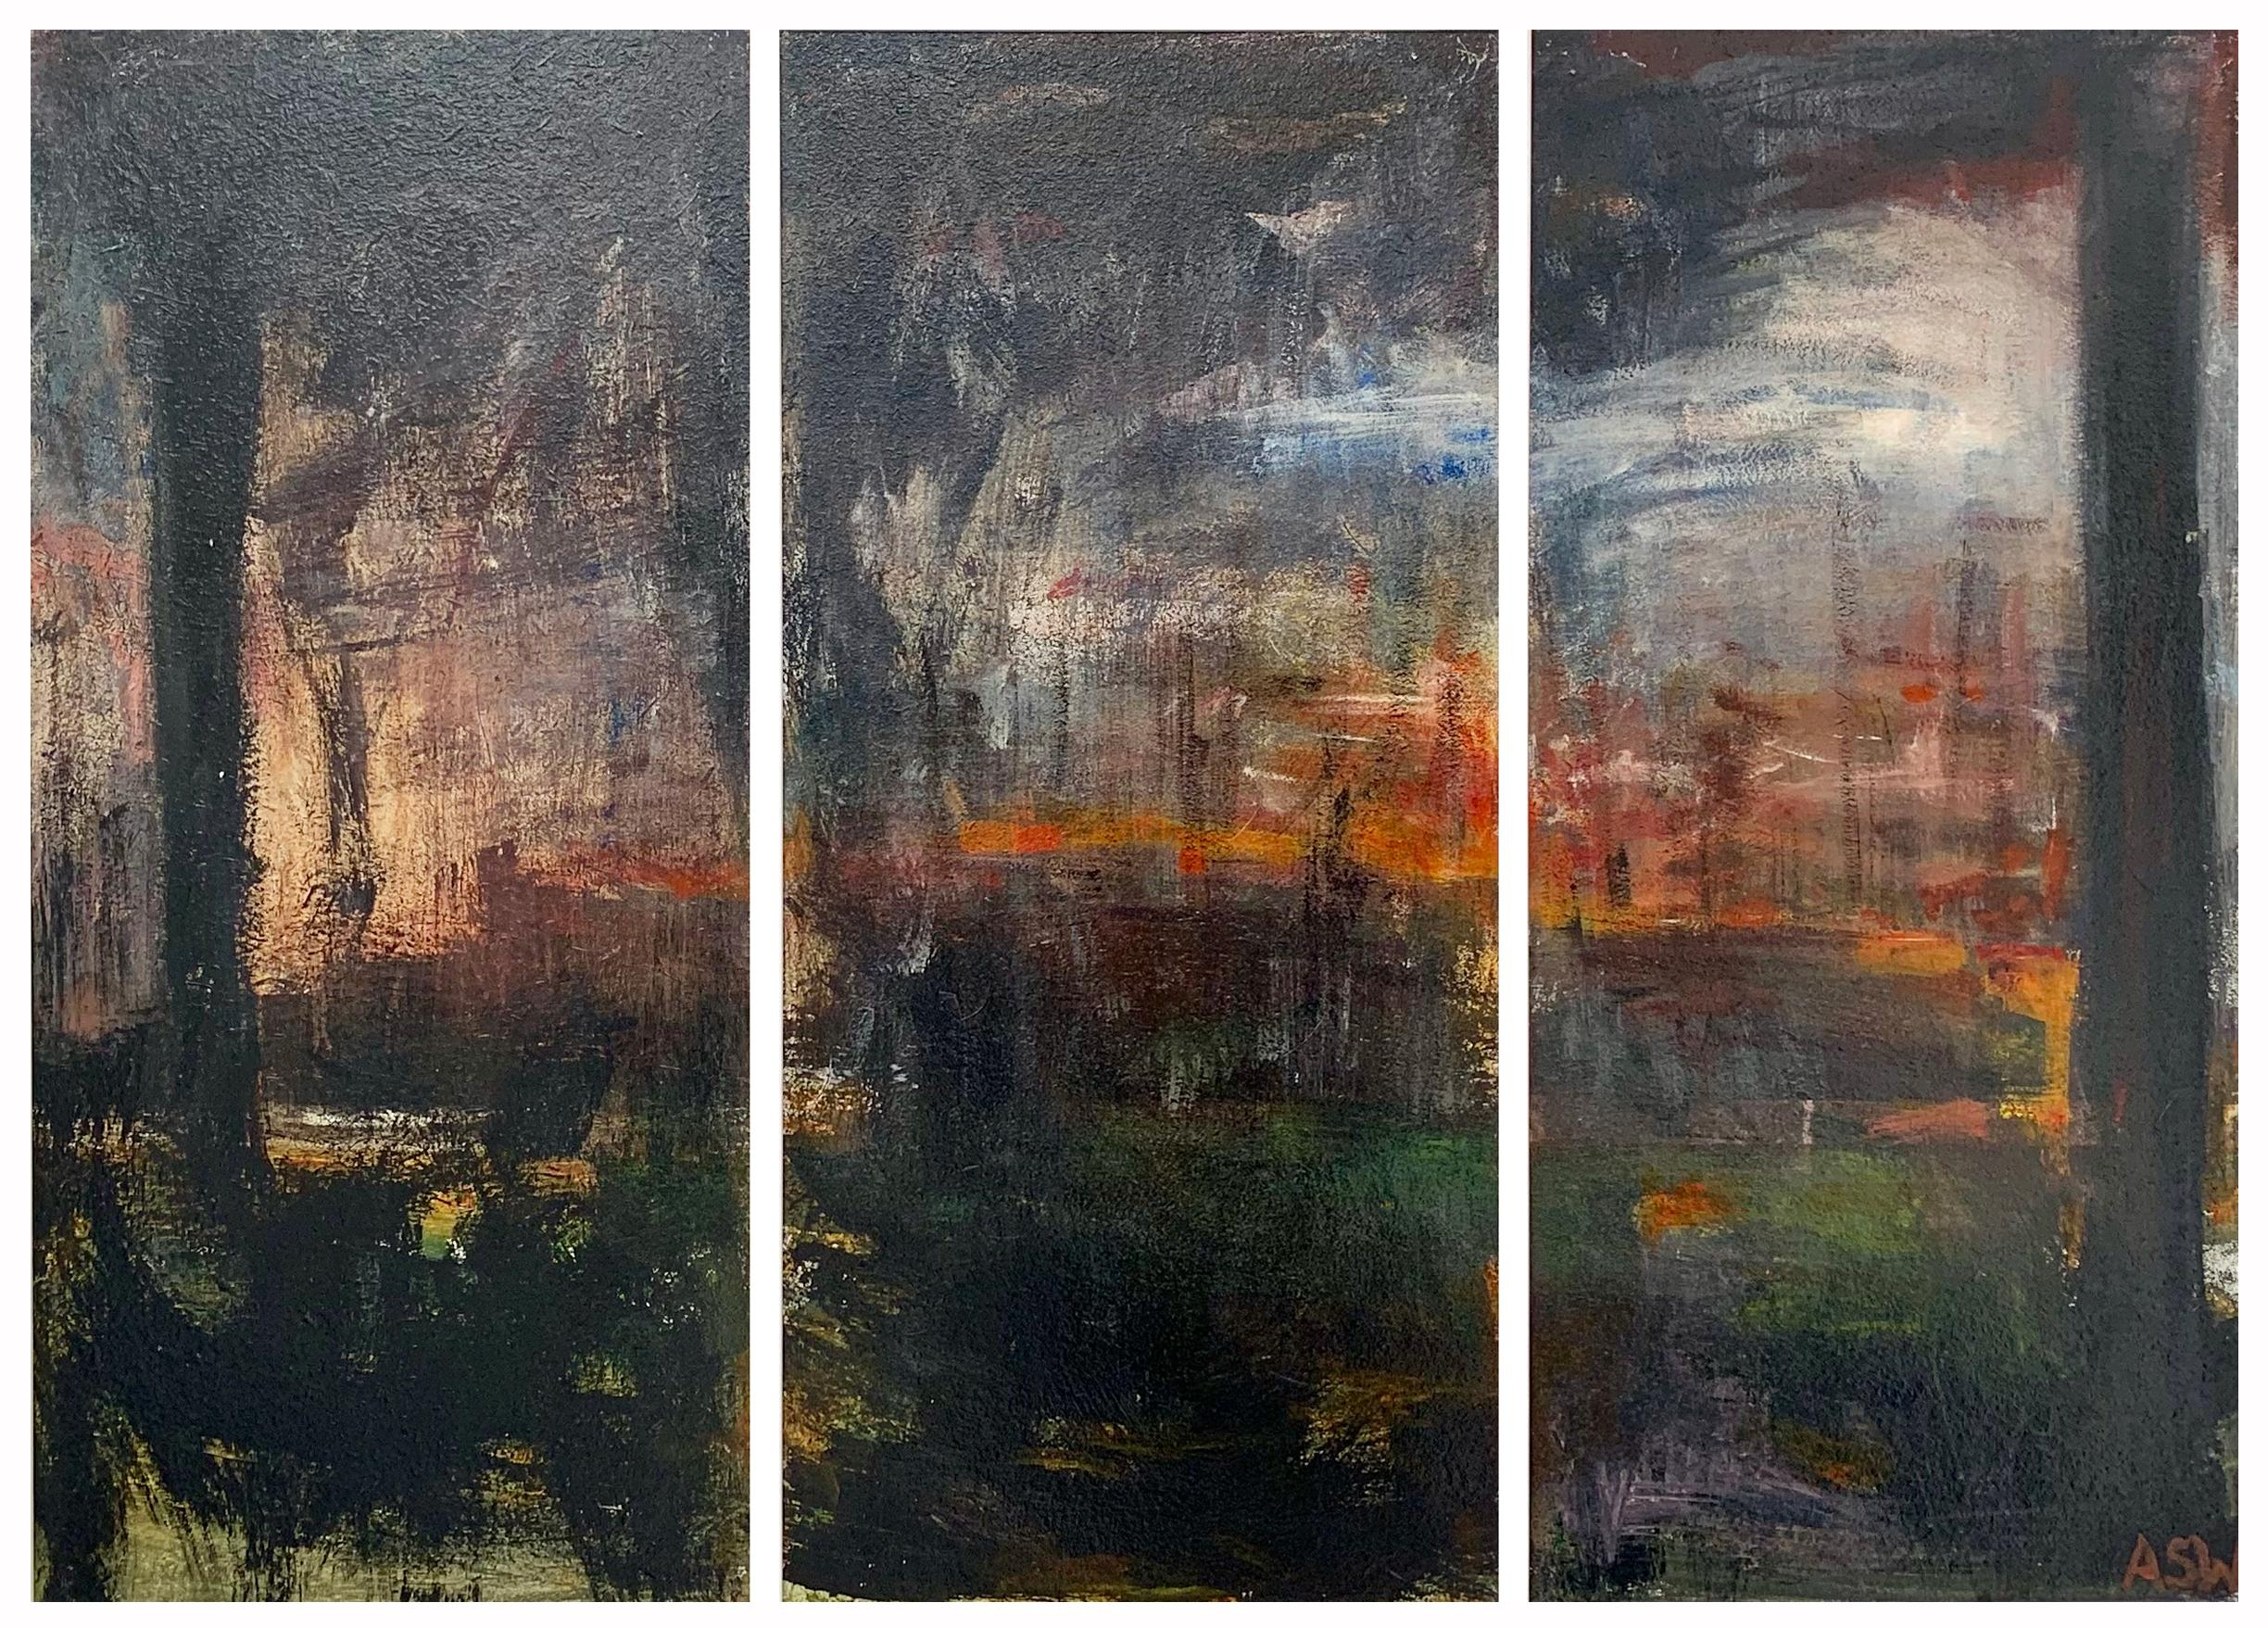 Triptych Abstract Forest Trees Landscape Painting by British Urban Artist